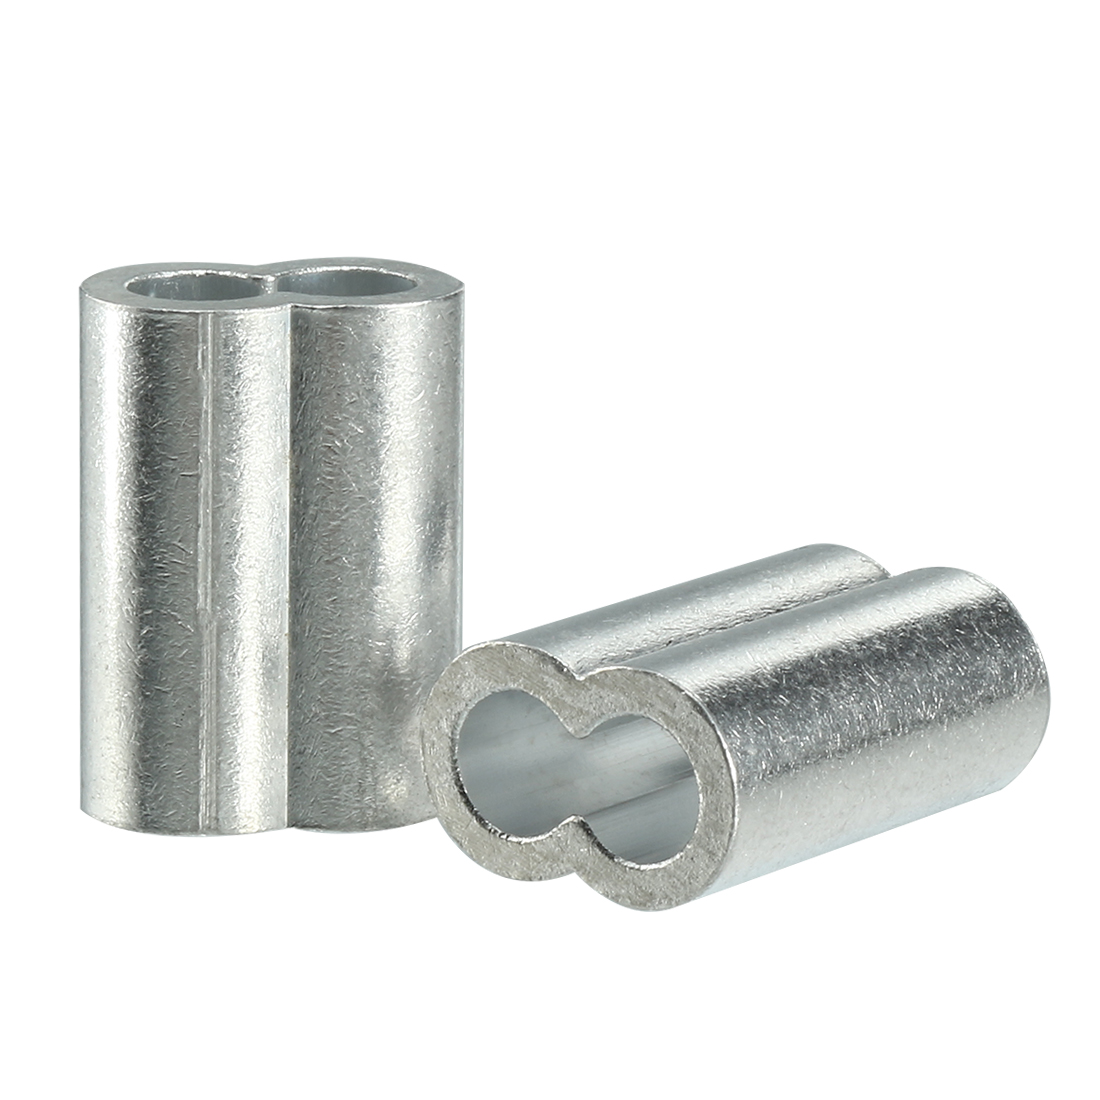 5mm 1/5-inch Cable Wire Rope Aluminum Sleeves Clip Crimping Loop 50pcs